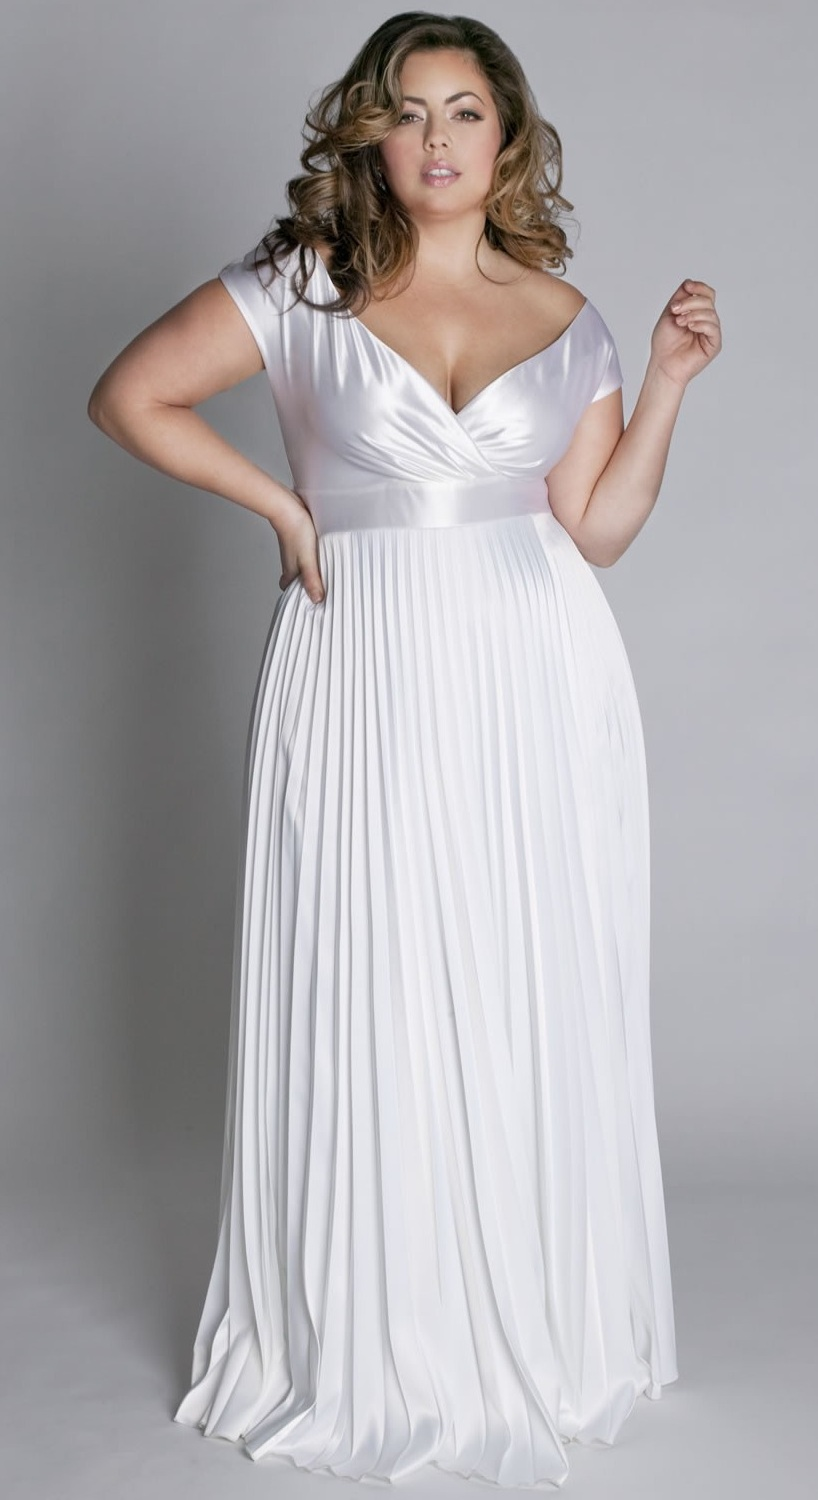 301 moved permanently for Used plus size wedding dress